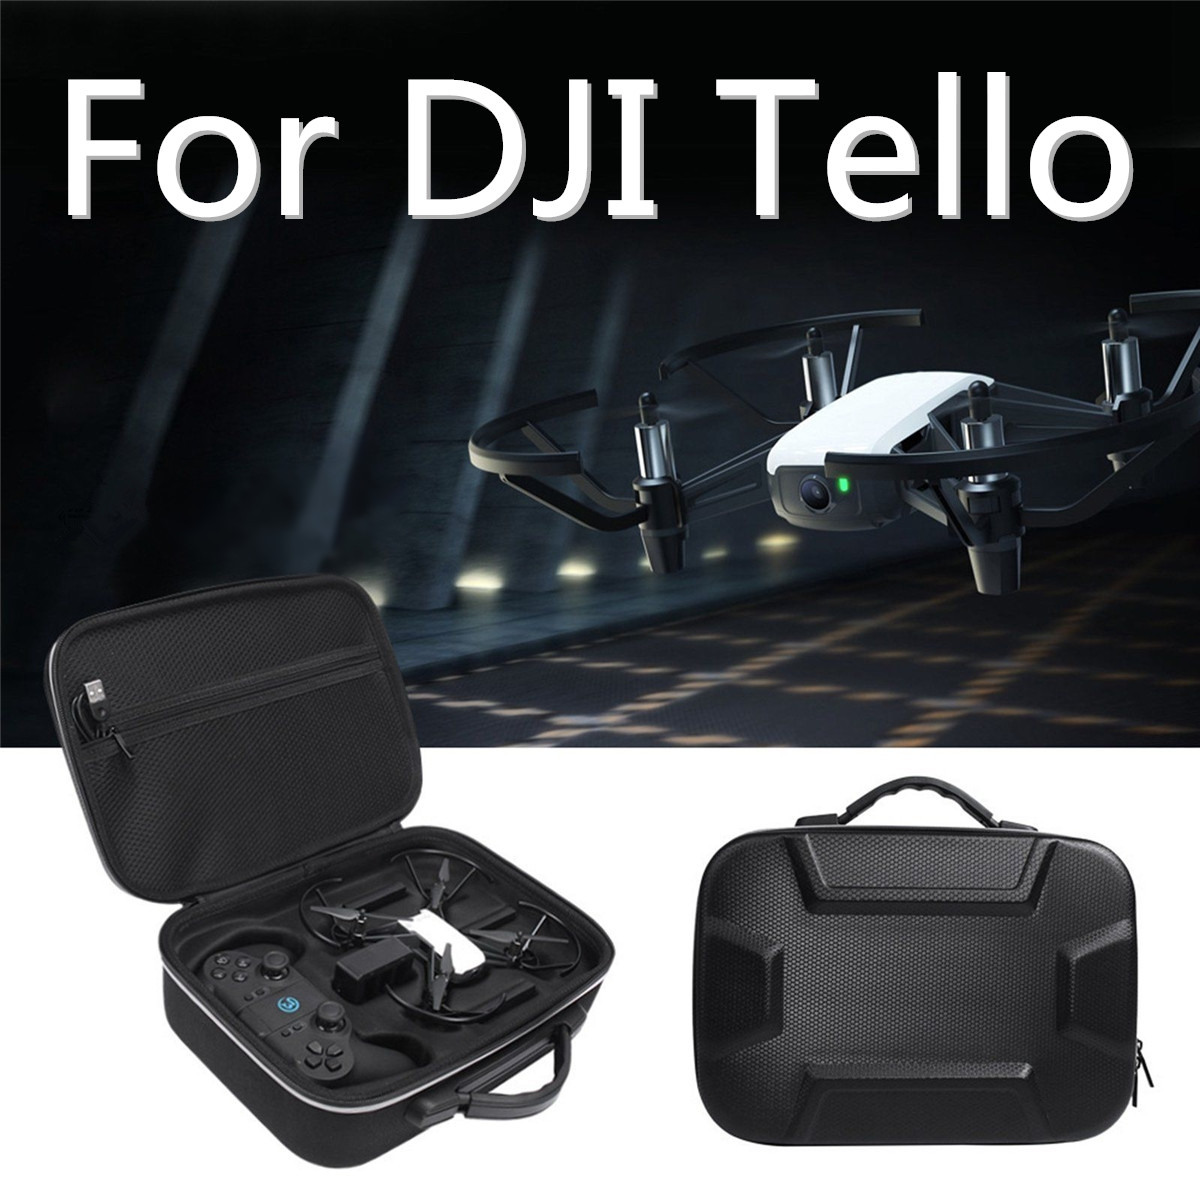 Multifunctional Storage Case Carrying Bag For DJI Tello Drone & GameSir T1d Remote Controller